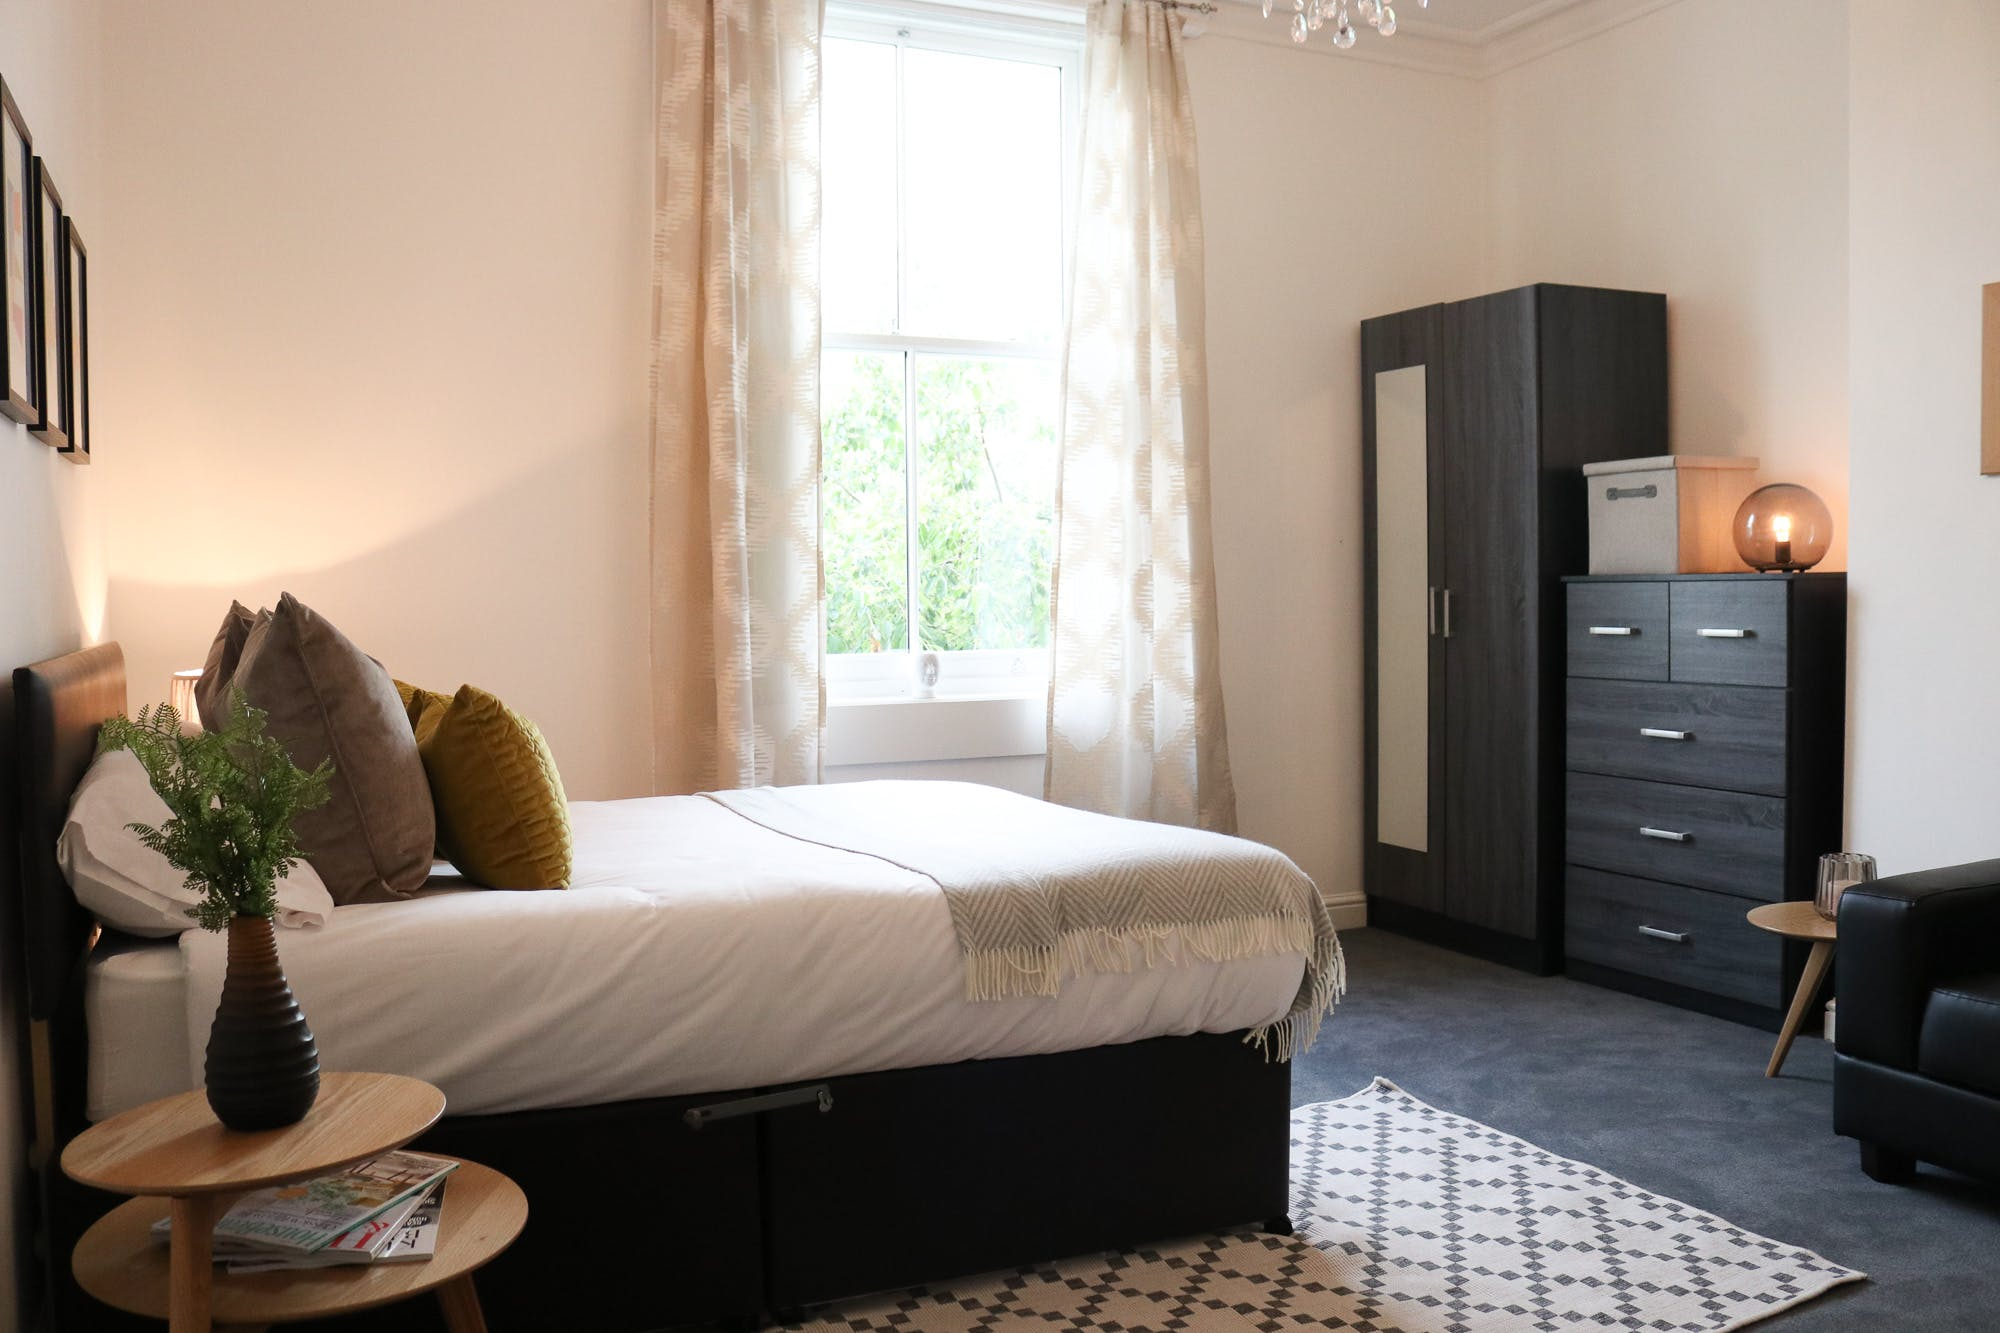 Luxury double room to rent in Liverpool City Centre